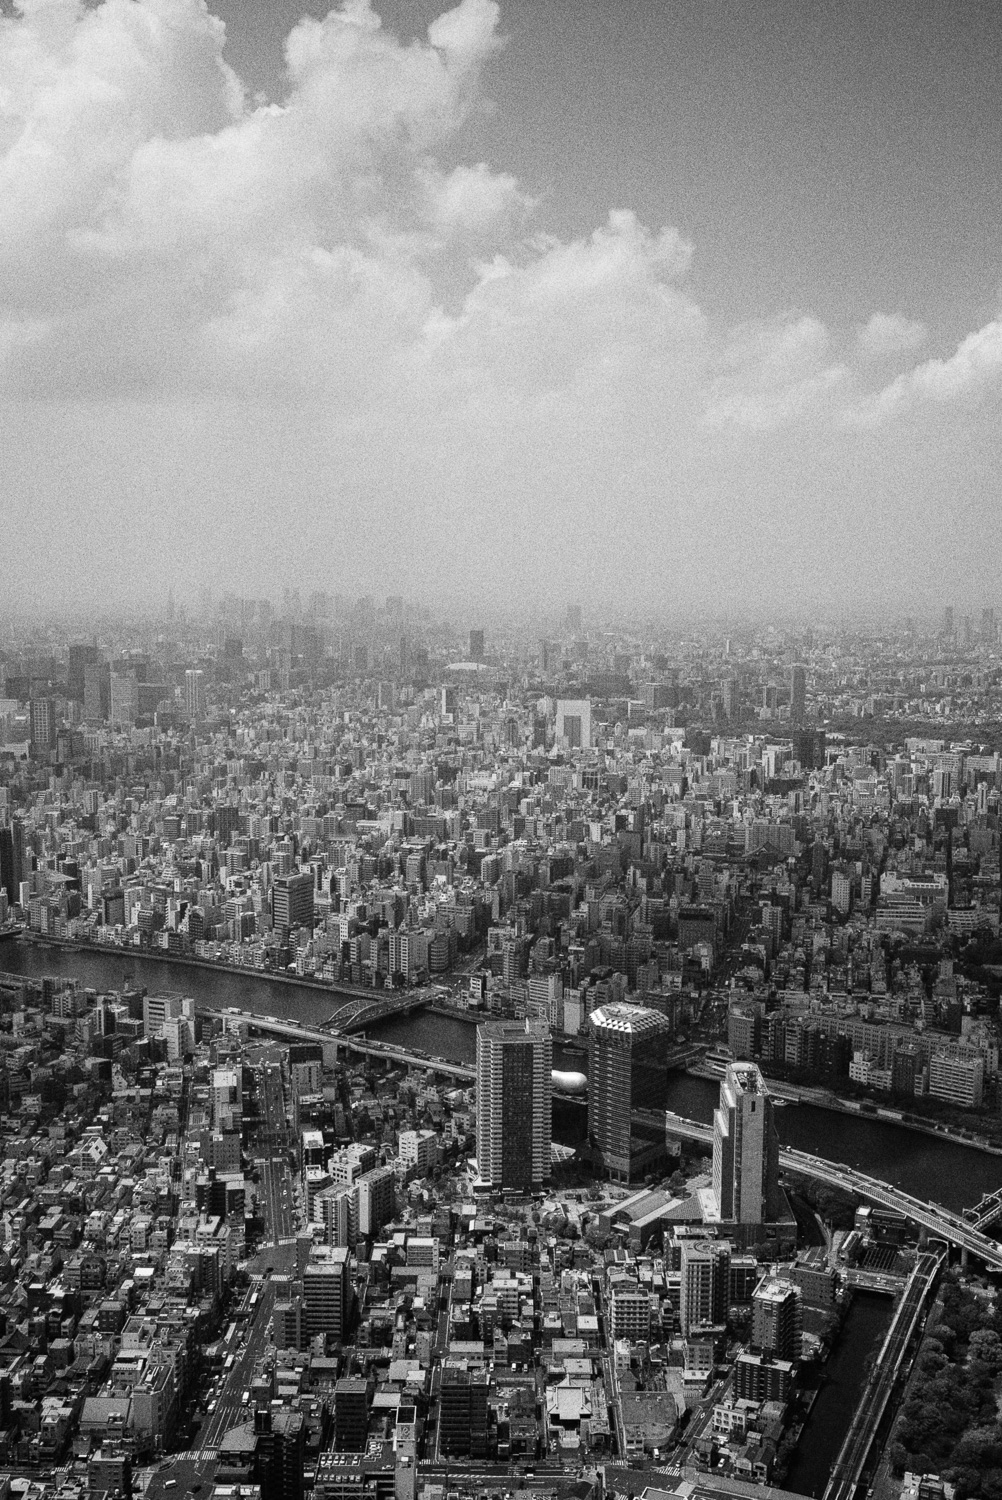 Tokyo is big. Really big. You just won't believe how vastly, hugely, mind-bogglingly big it is.